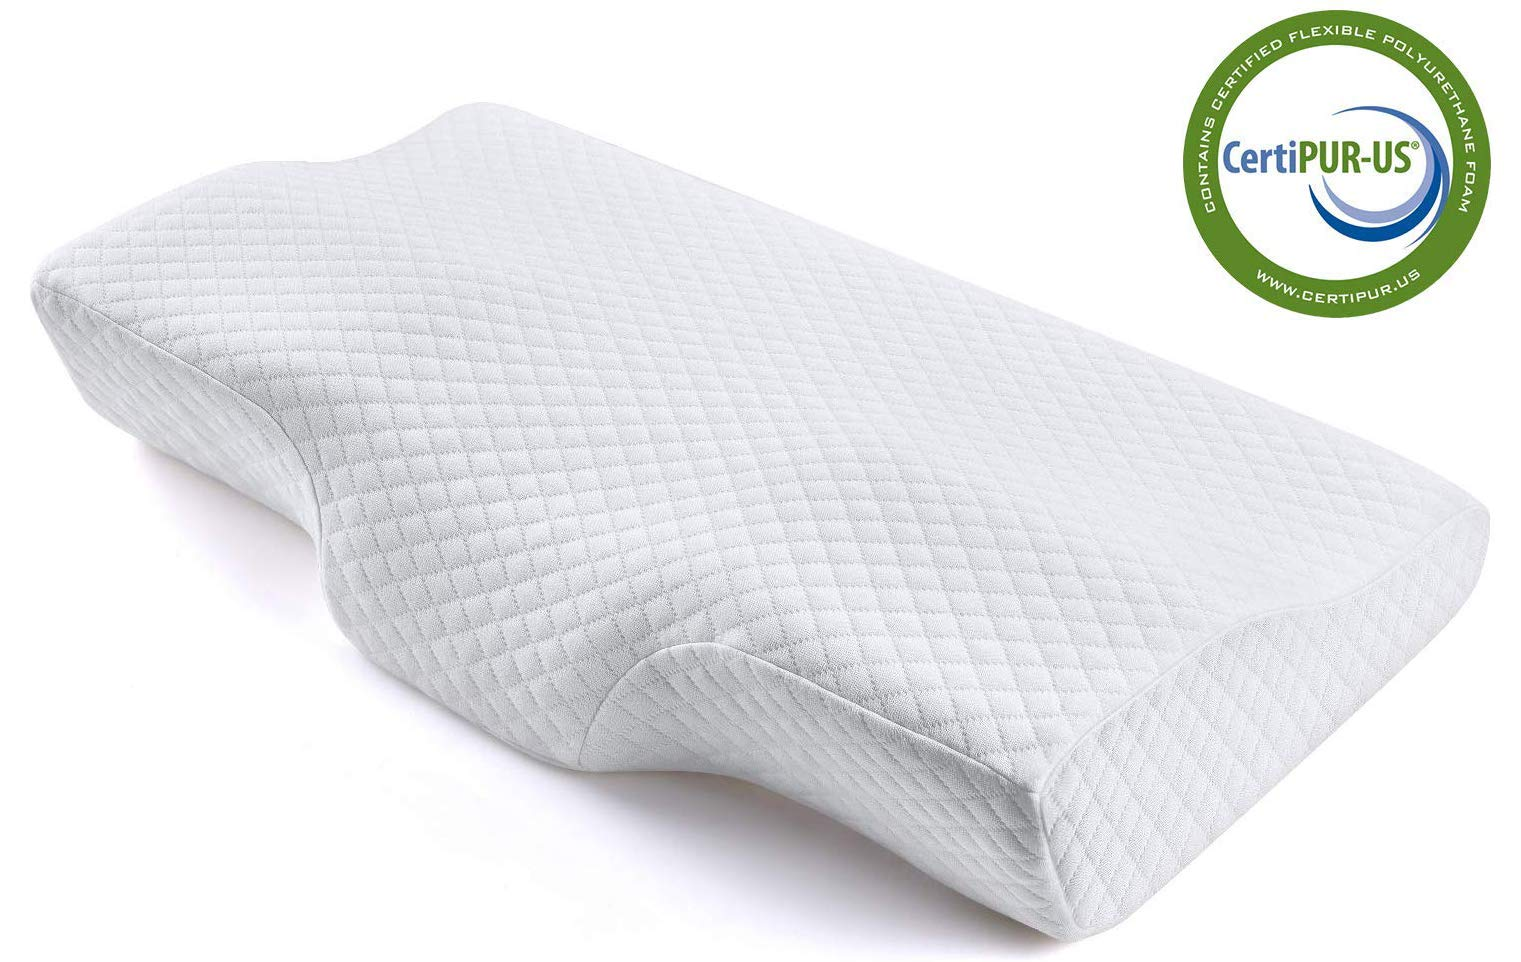 Memory Foam Pillow, Ergonomic Cervical Pillow for Neck Pain for Side Sleepers, Back and Stomach Sleepers, Orthopedic Sleeping Pillow with Pillow Case – Standard Size